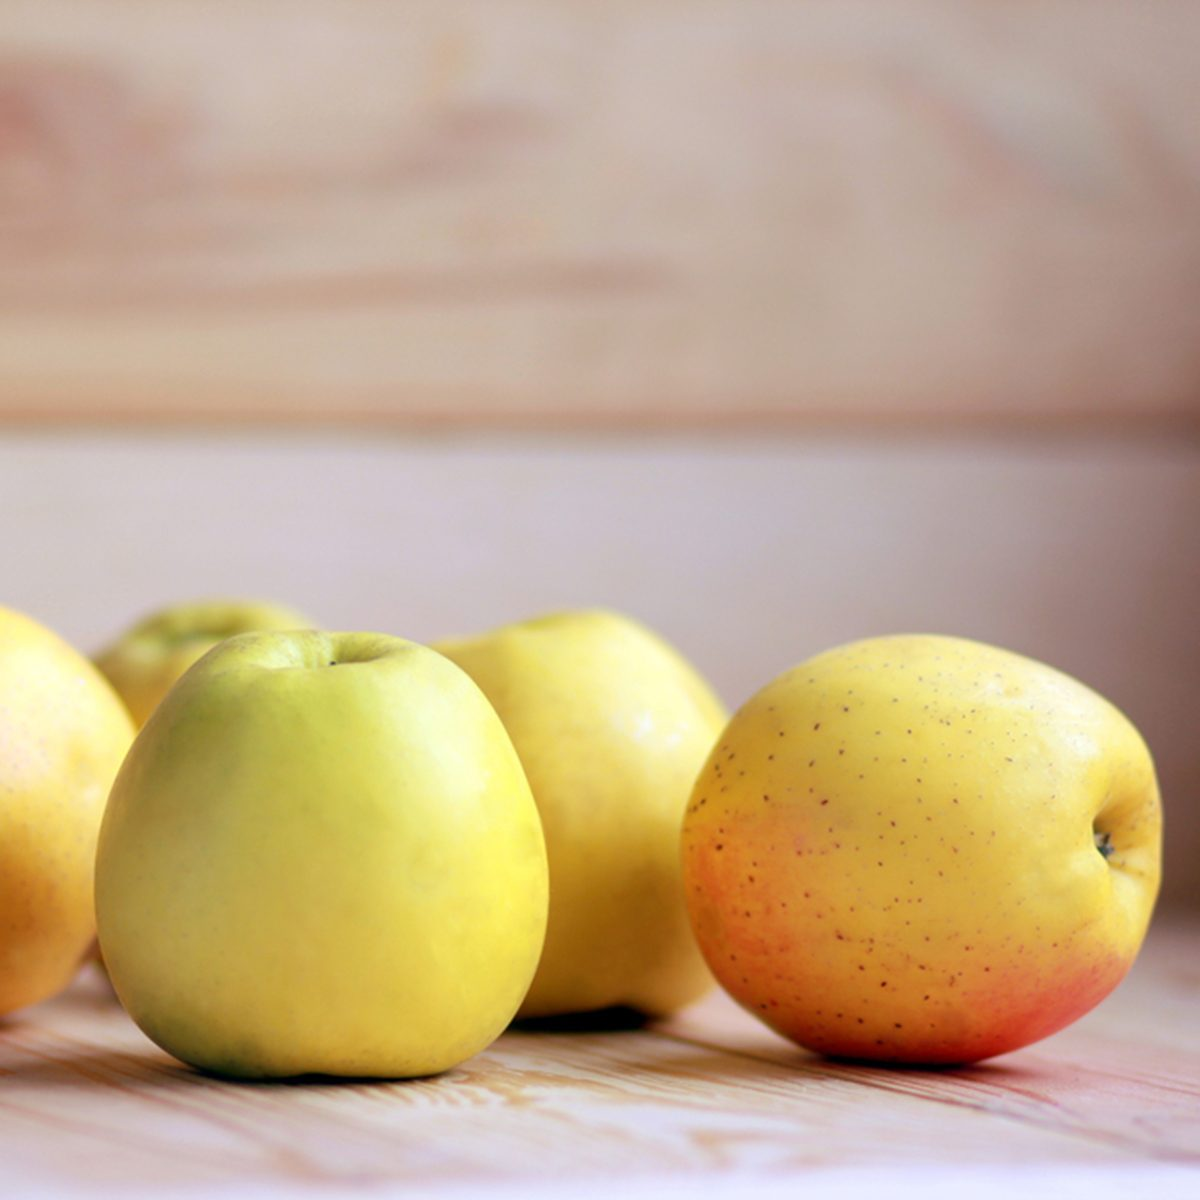 Yellow apples scattered on the wooden background.